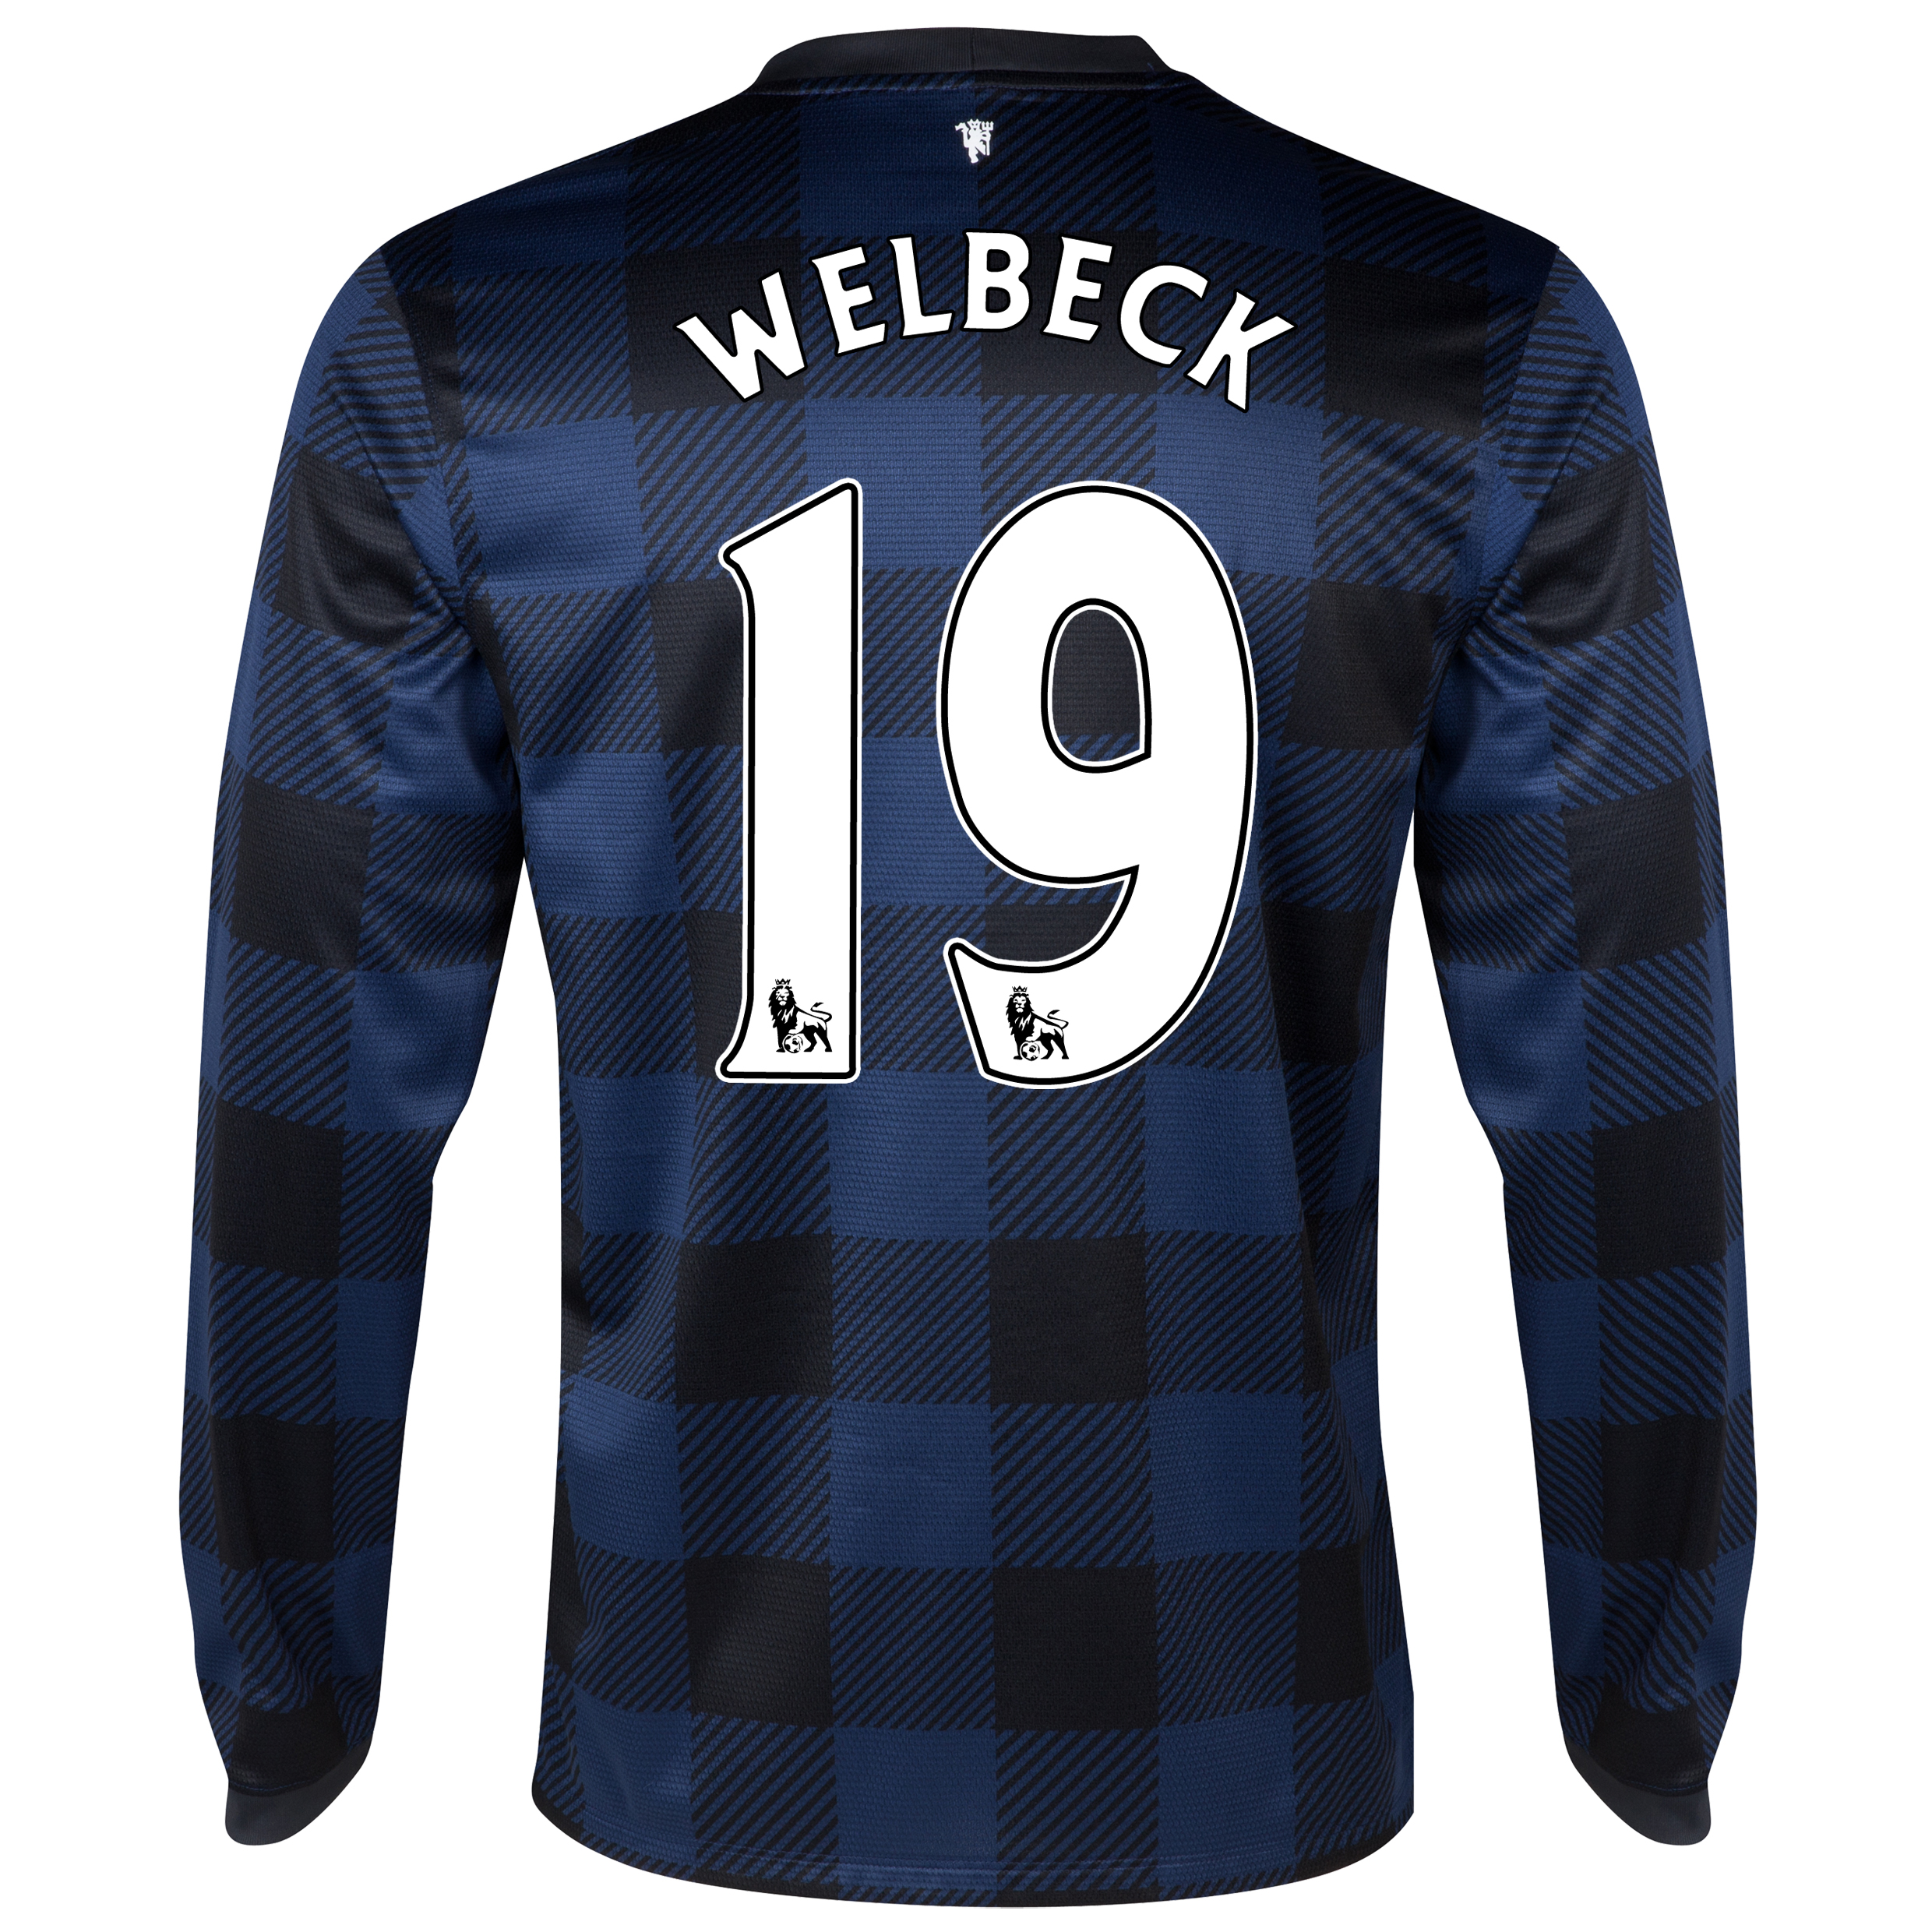 Manchester United Away Shirt 2013/14 - Long Sleeved - Kids with Welbeck 19 printing